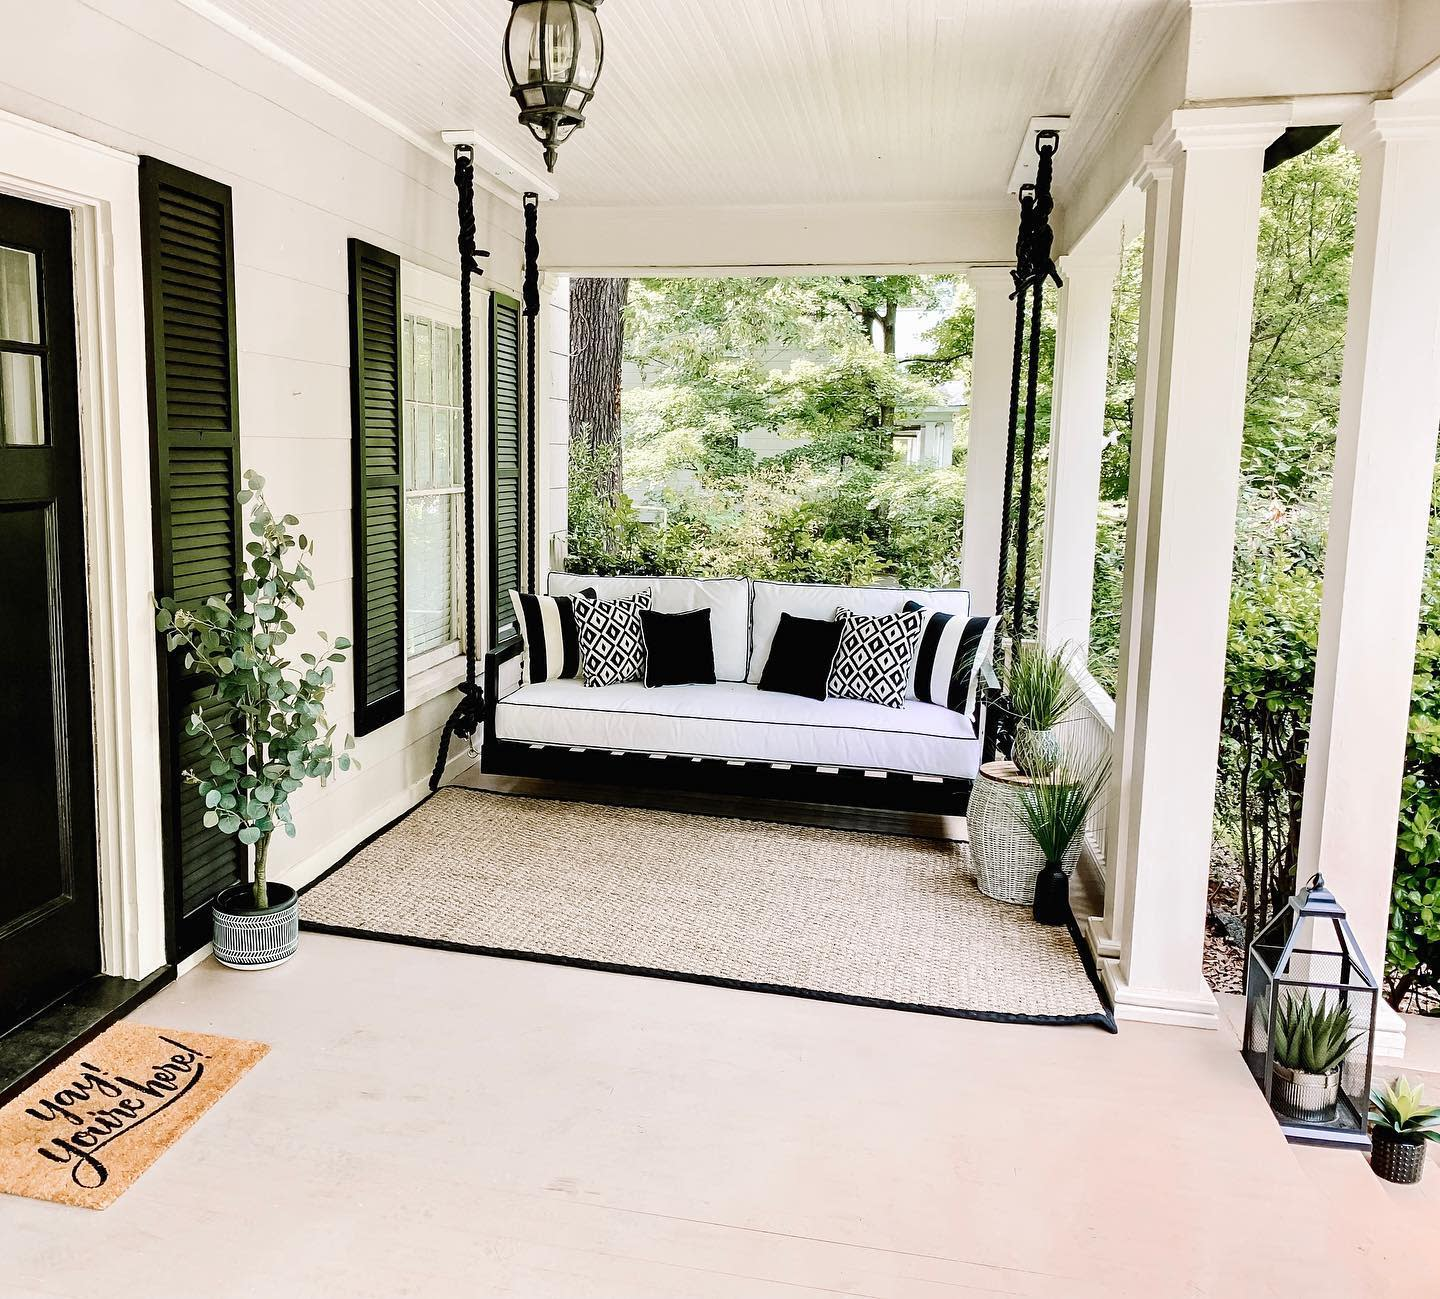 Swing Daybed Ideas -johnston.escapes